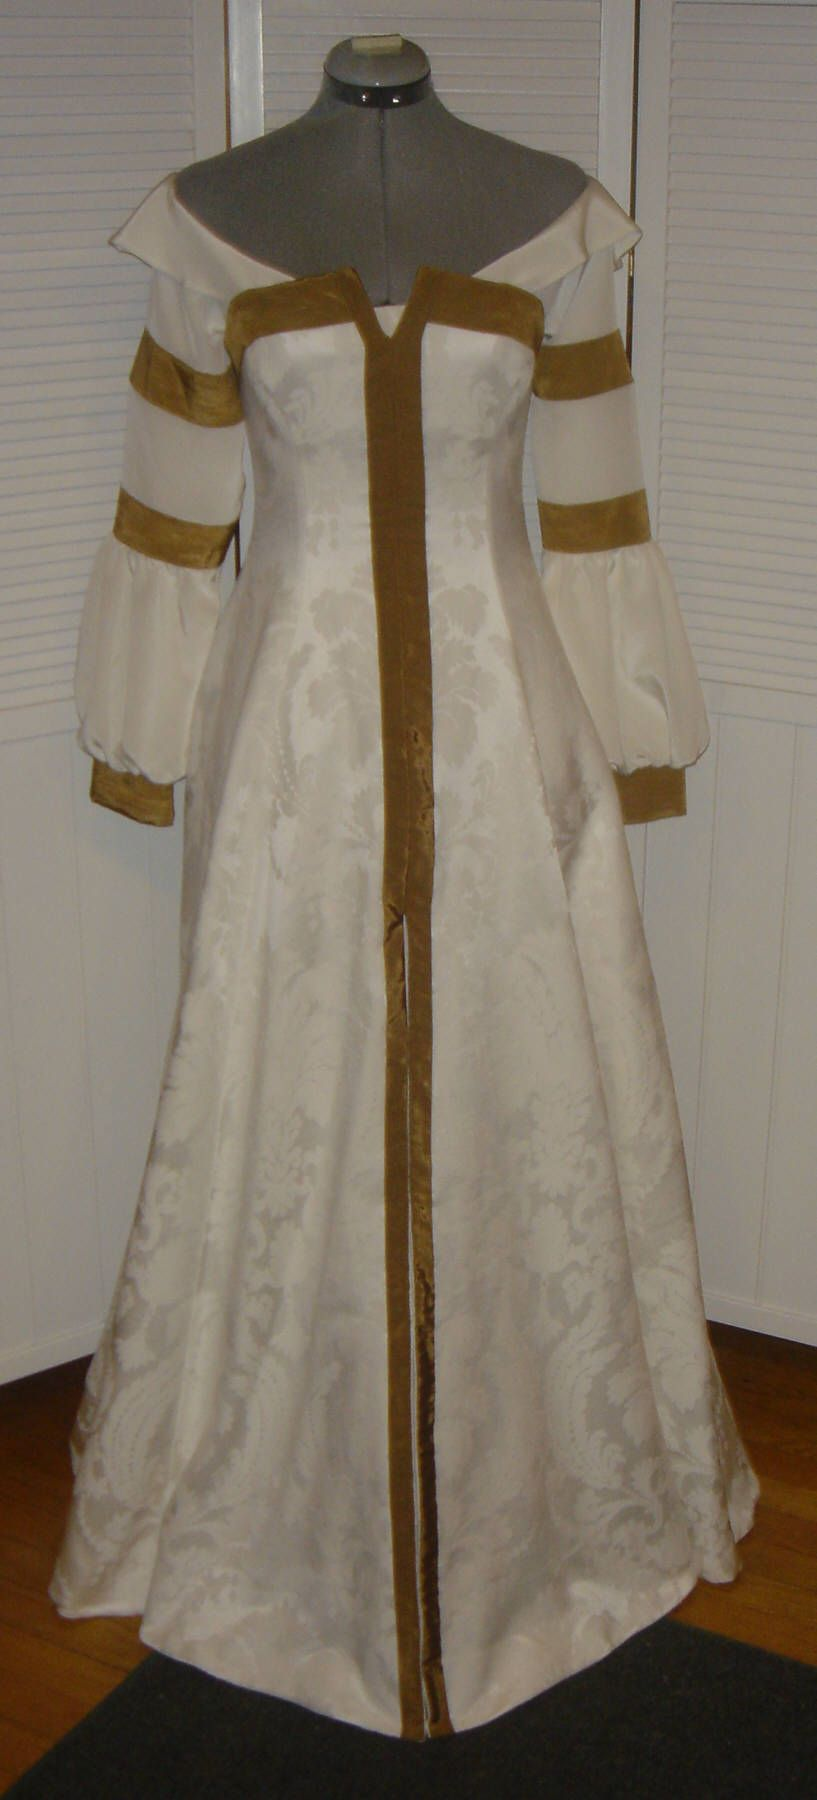 Narnia Prince Pevensie's Farewell Dressgown Chronicles Susan Of If6gyb7Yvm